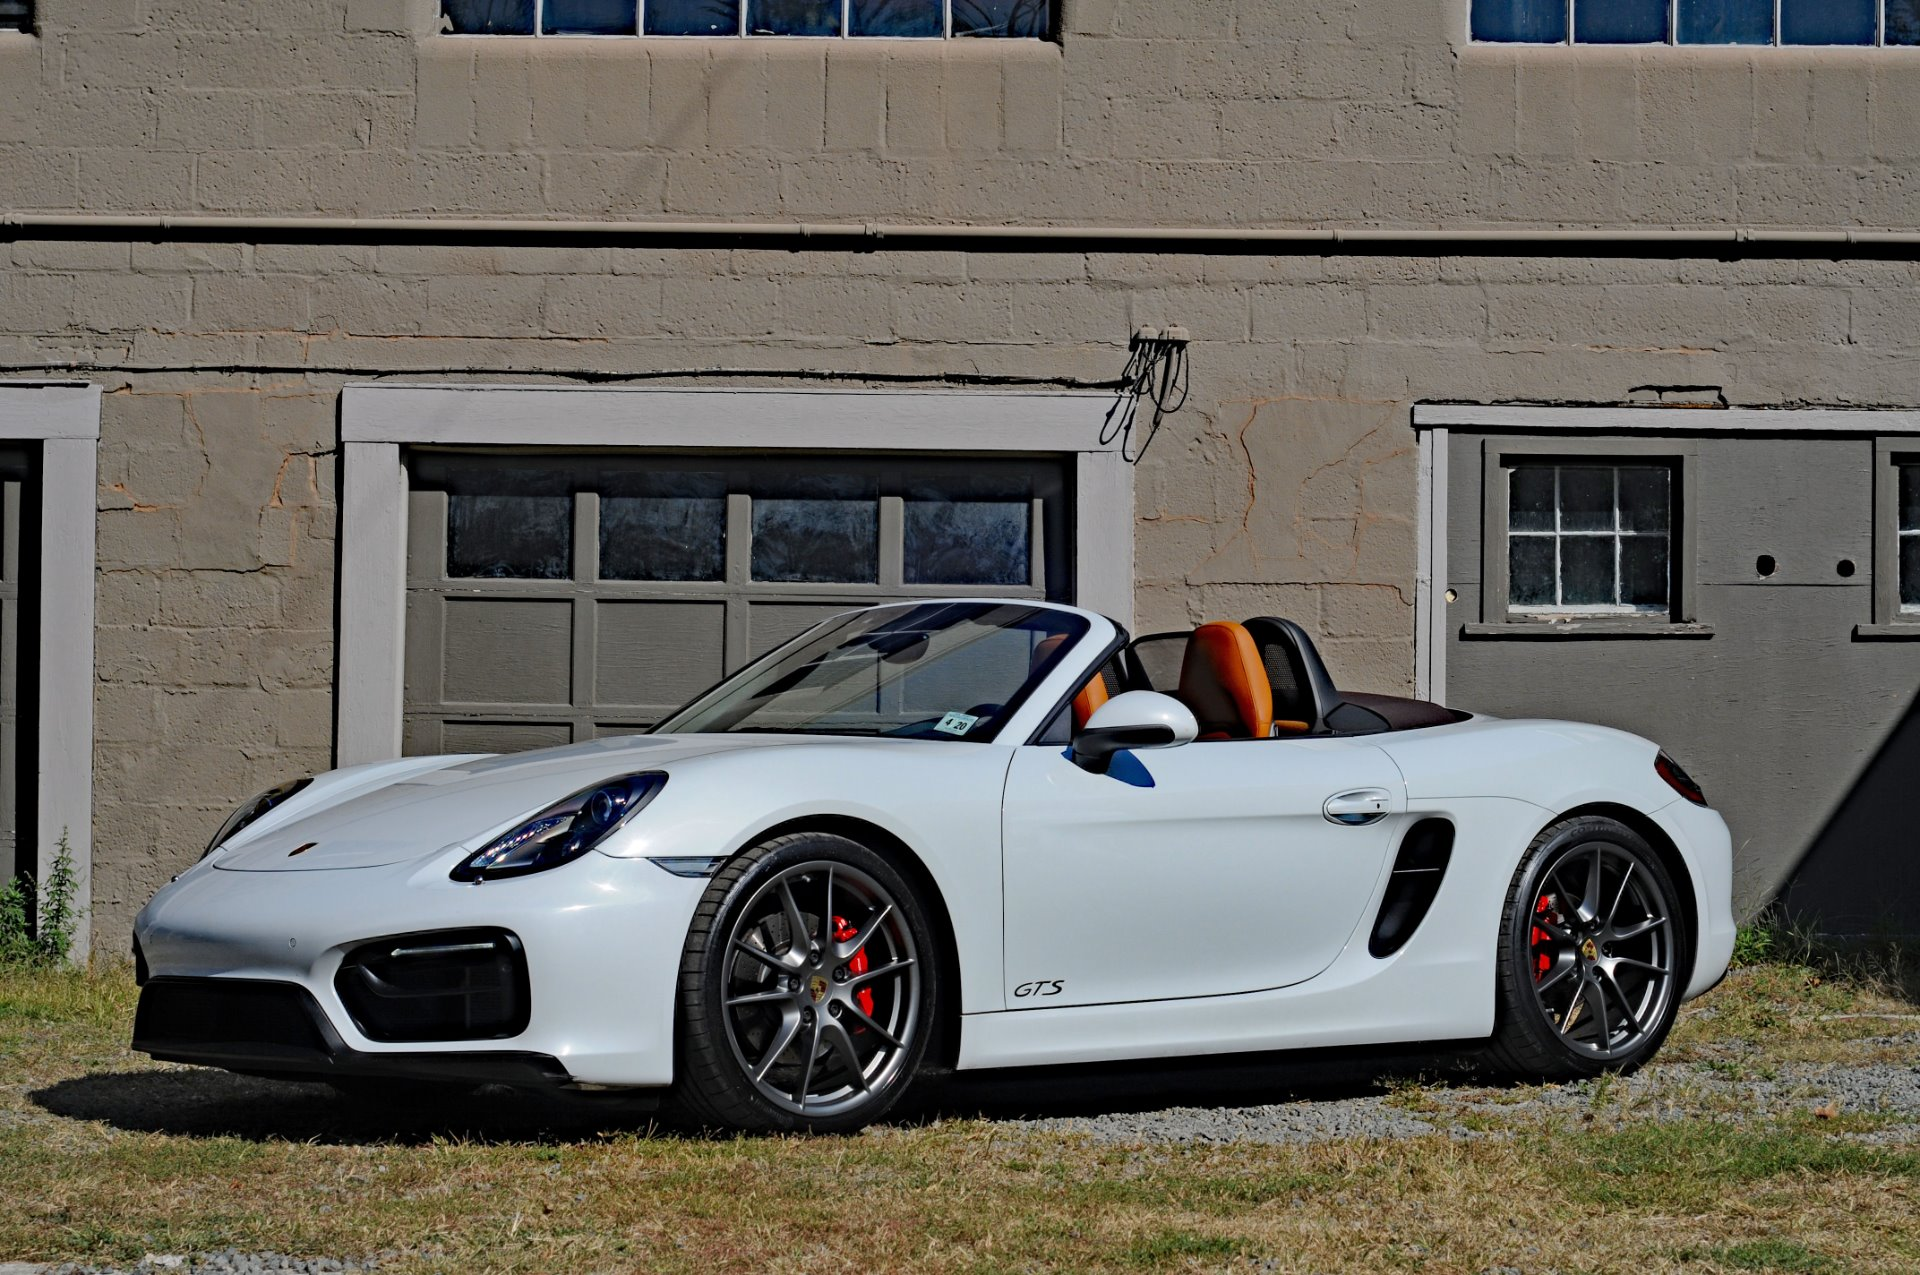 2015 porsche boxster gts gts stock 2366 for sale near. Black Bedroom Furniture Sets. Home Design Ideas